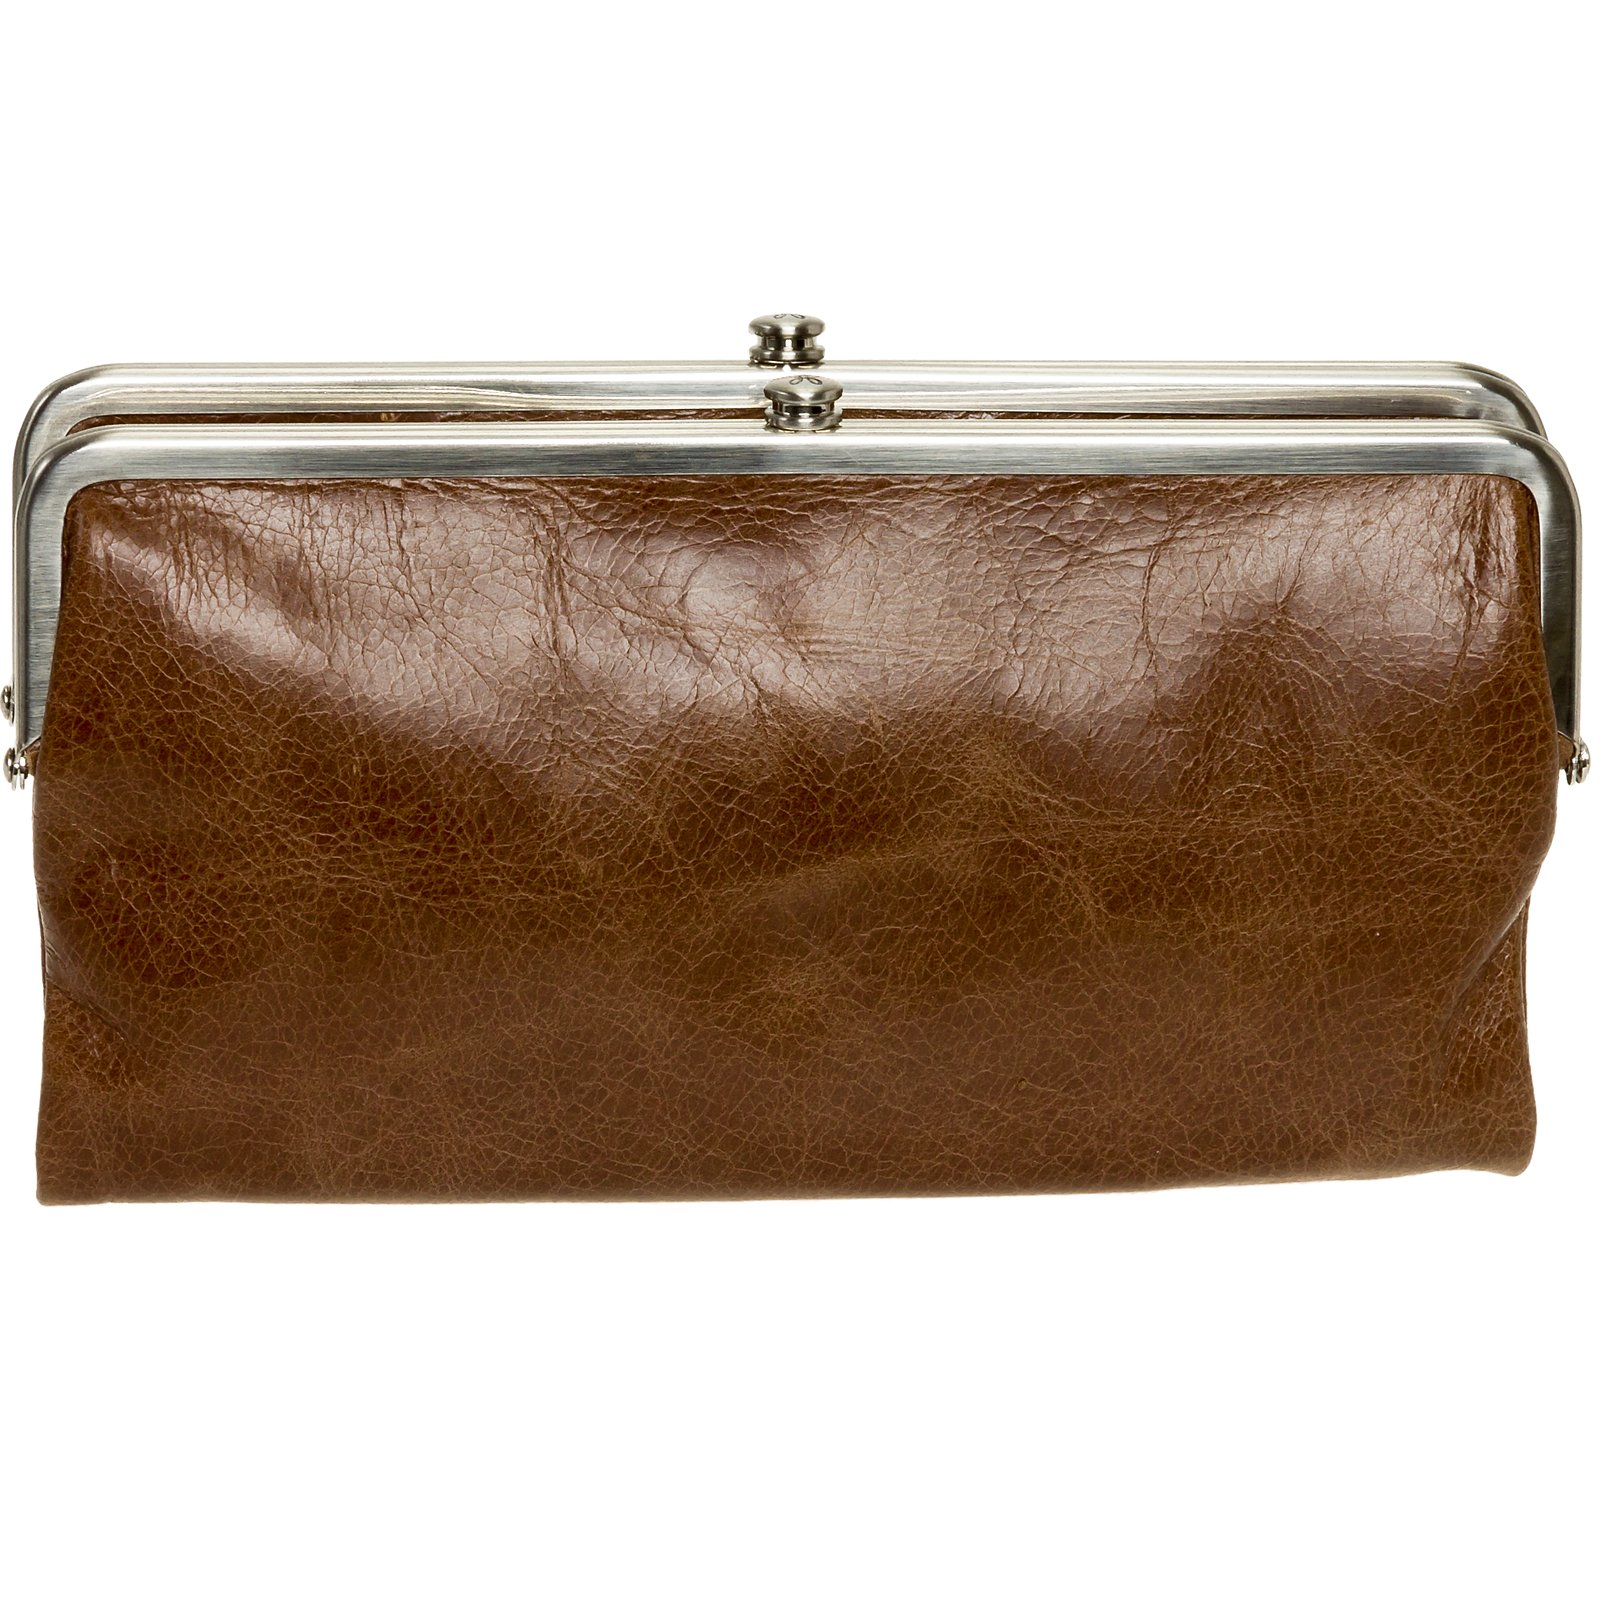 Hobo Women's Lauren Caf¿ Clutch